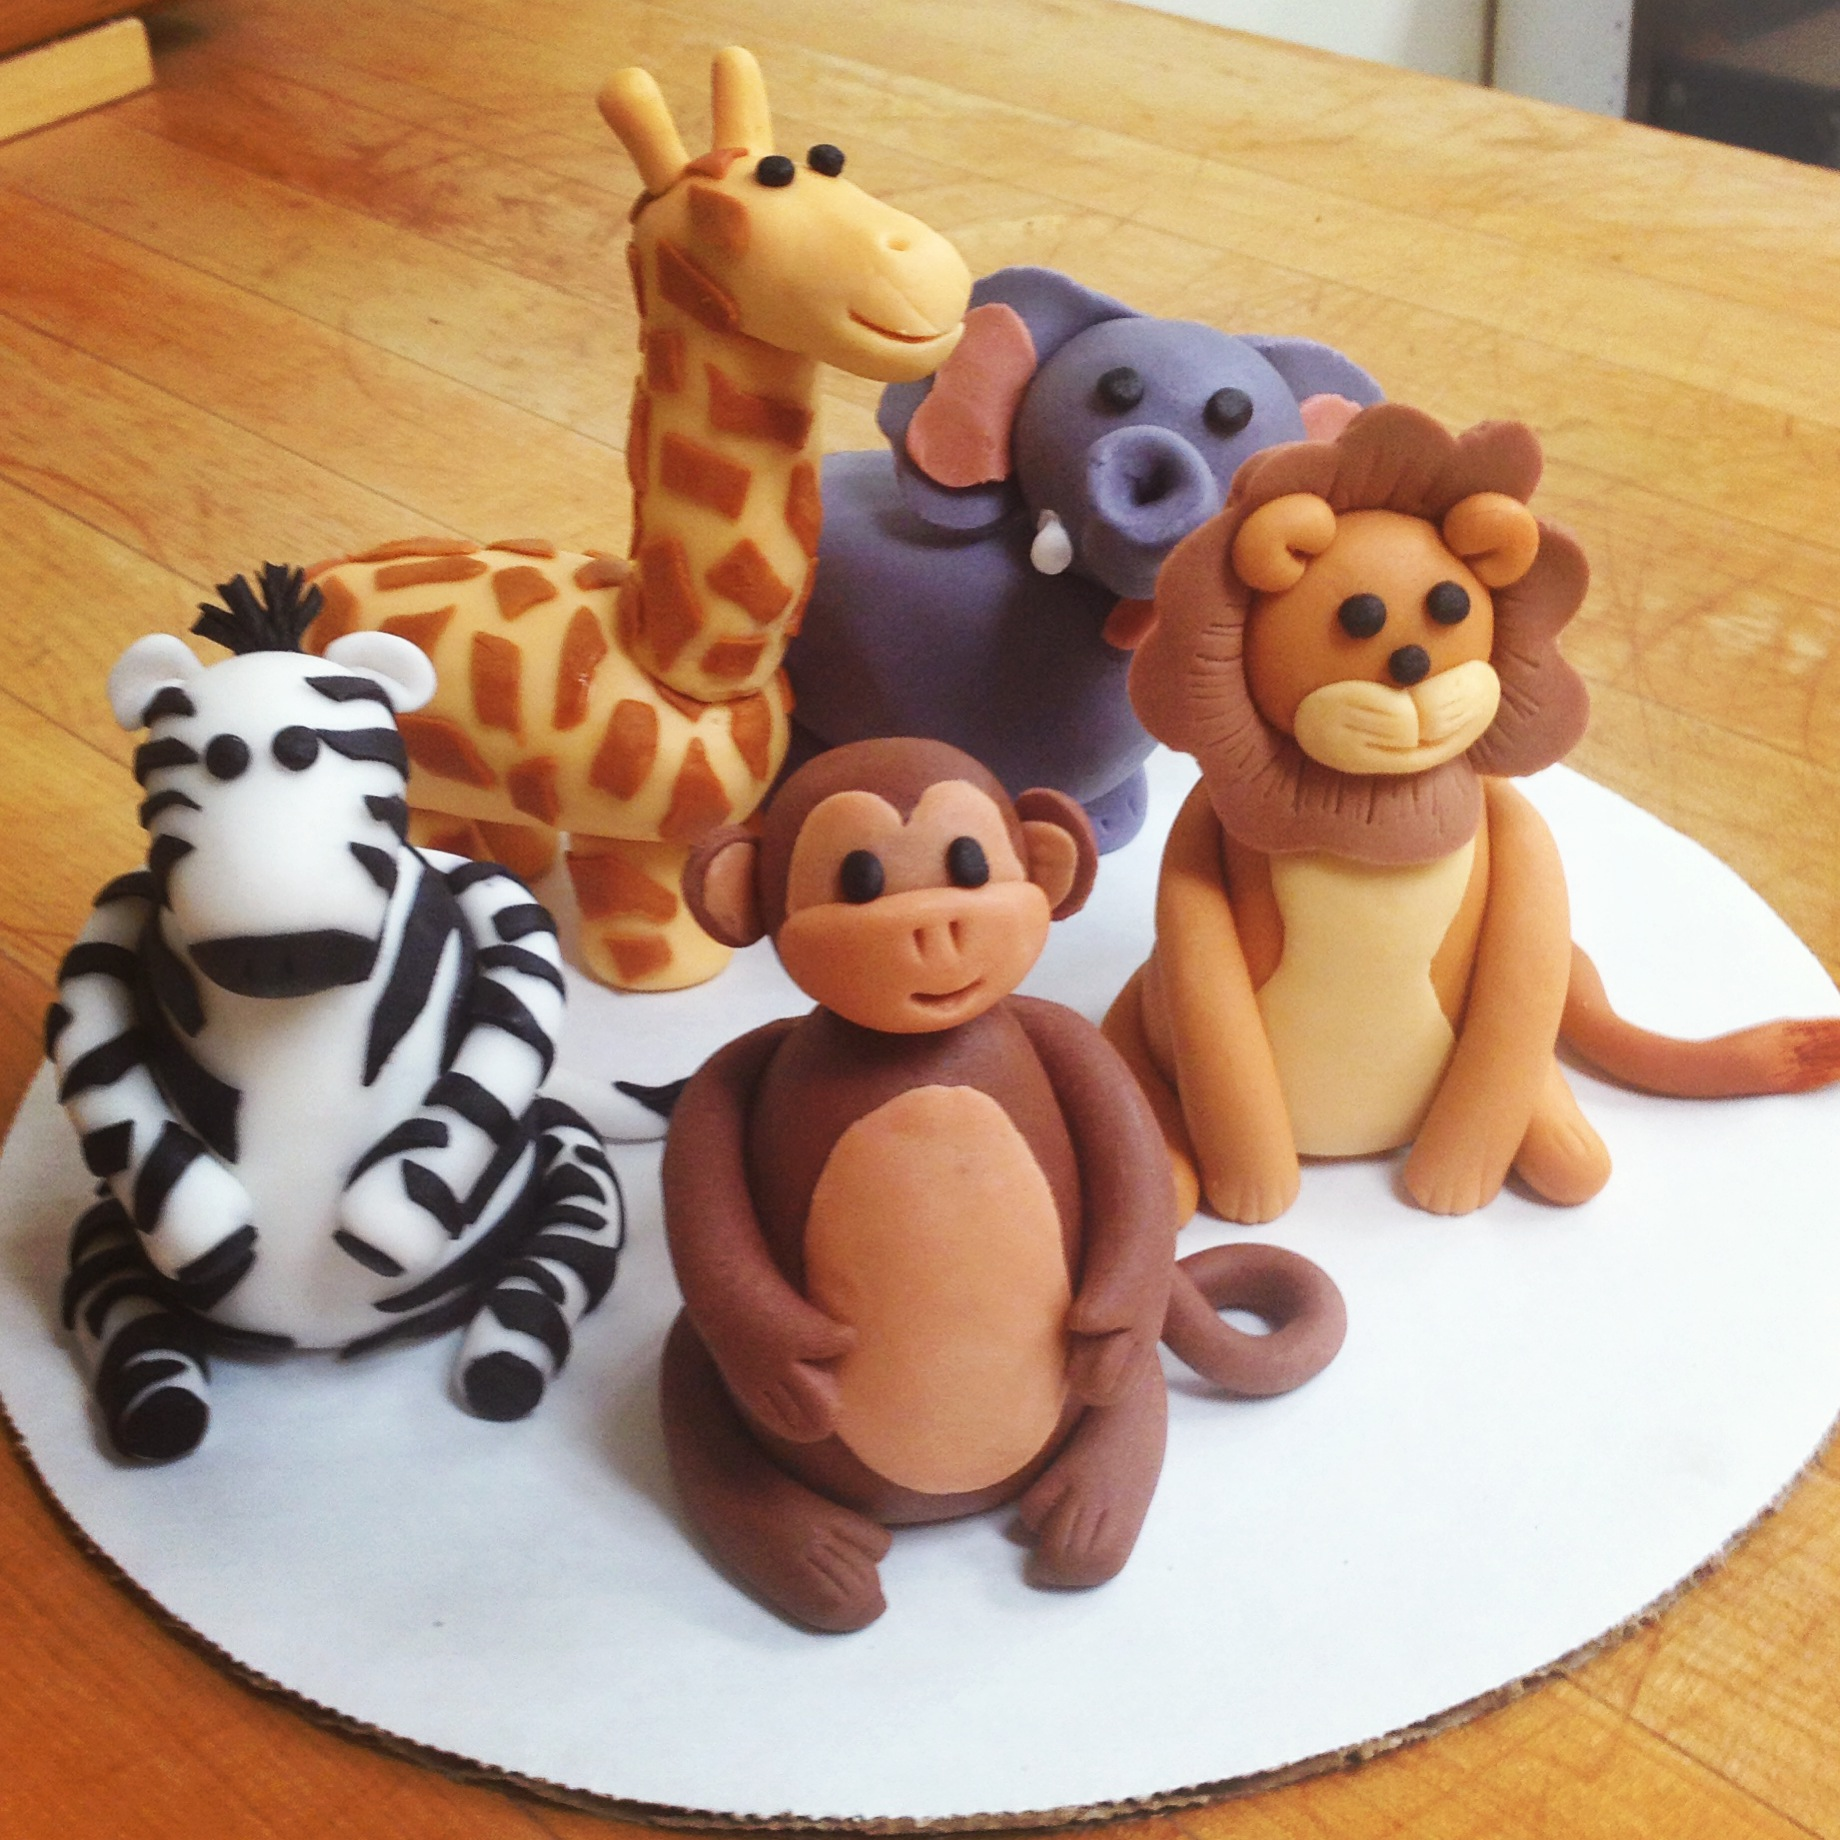 Hand sculpted fondant figures for an animal themed cake